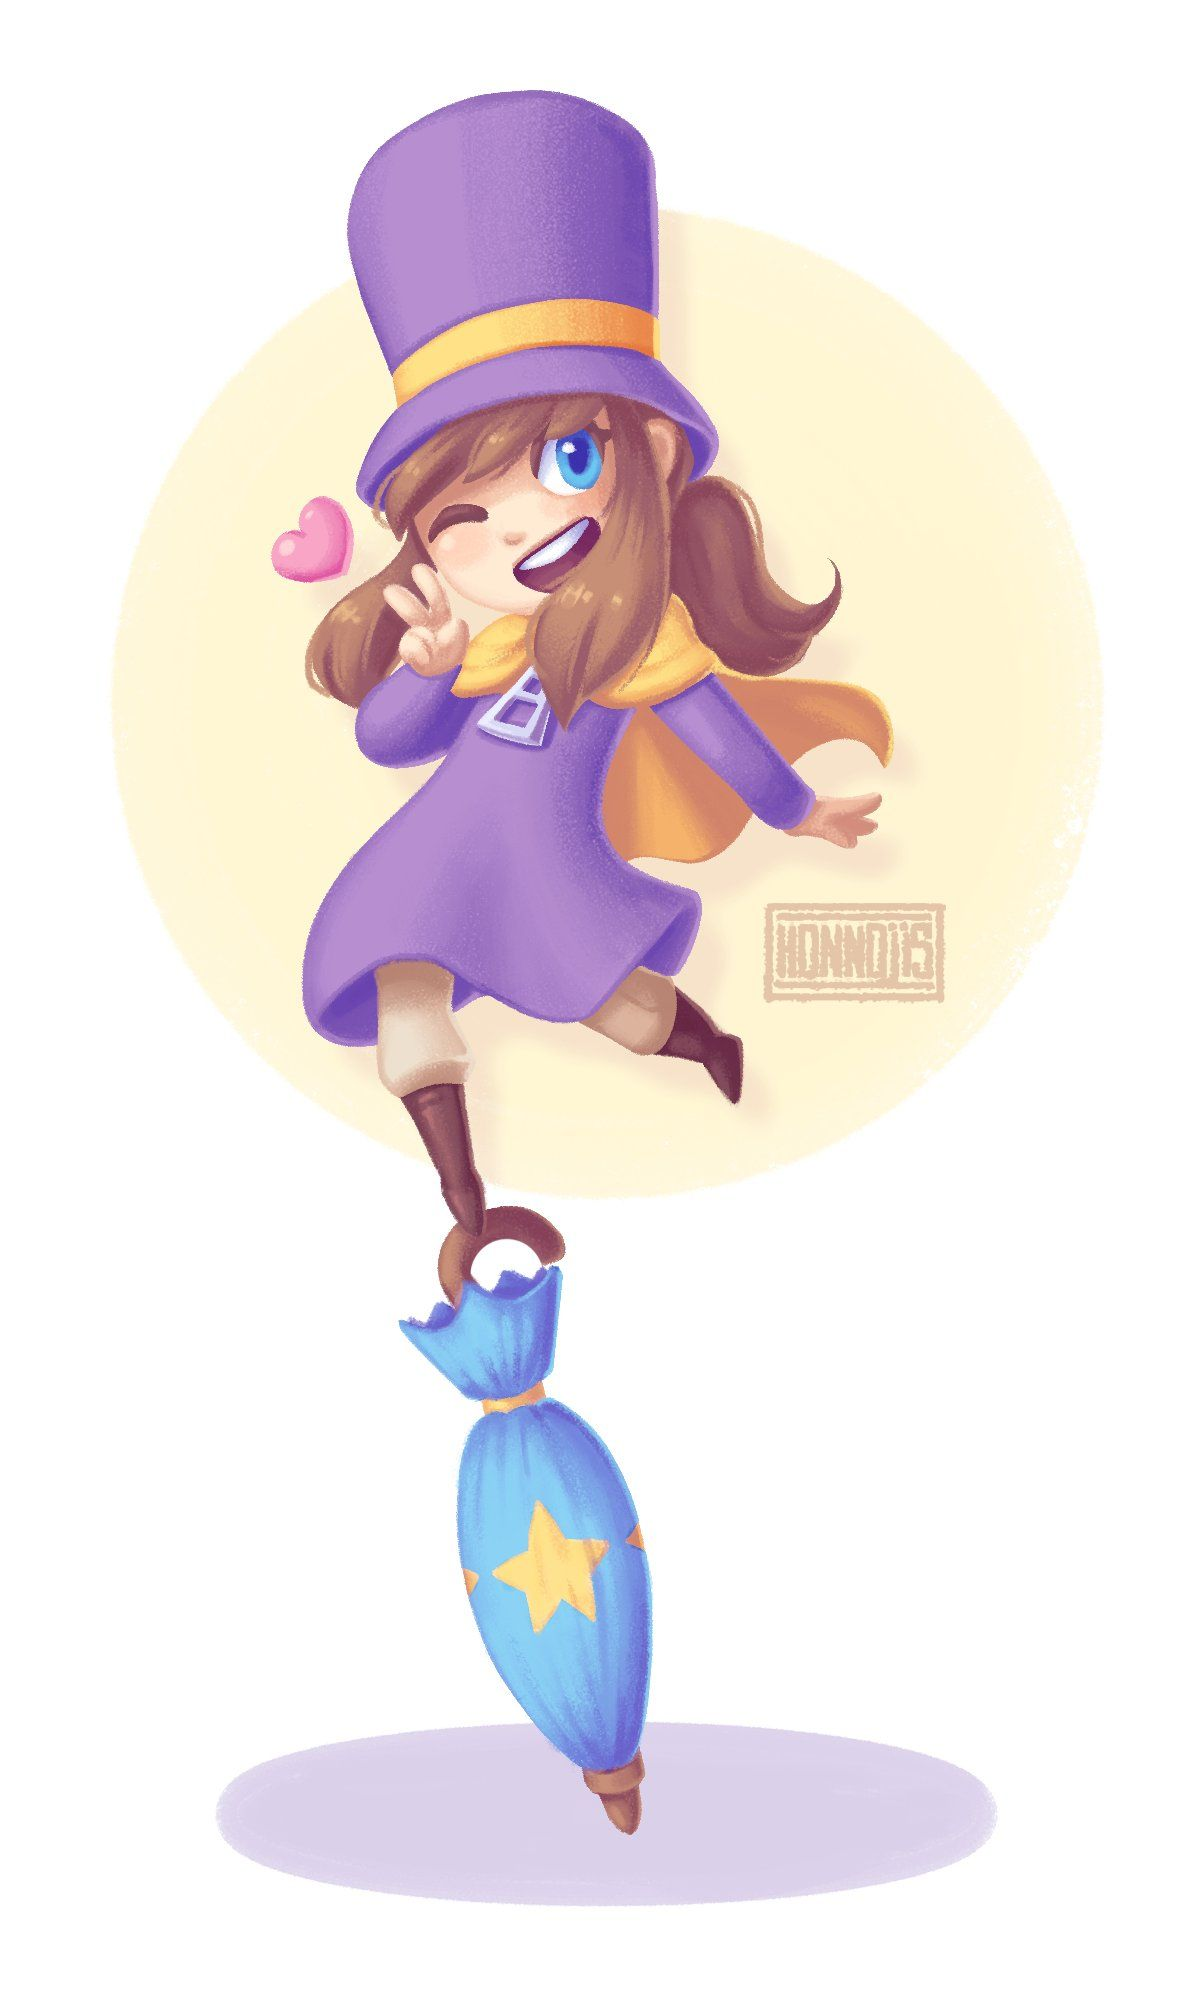 A Hat In Time Gears For Breakfast Hatintime Twitter A Hat In Time Hat In Time A Hat In Time Art